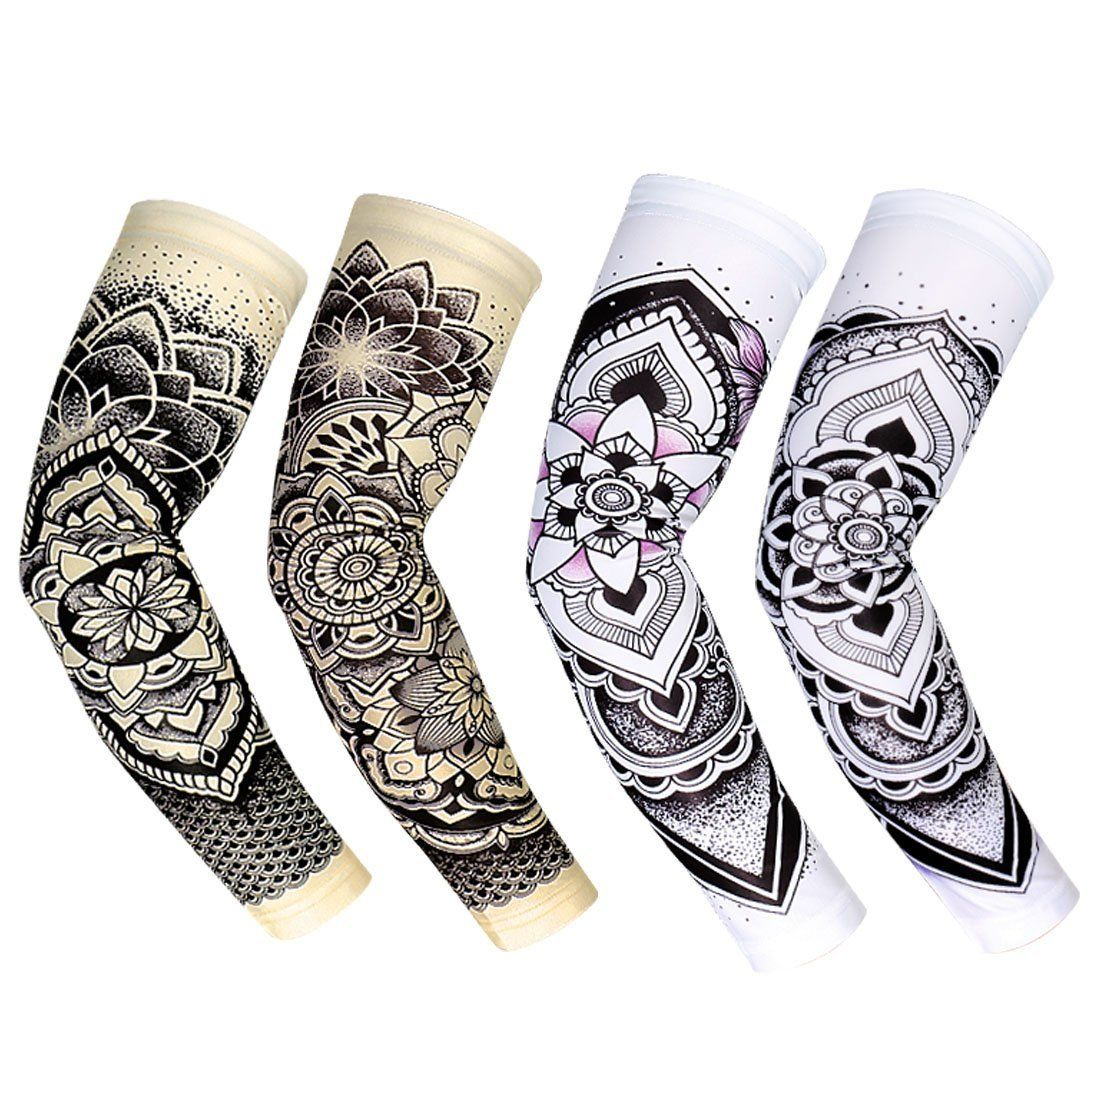 Amazon Com Rorytory Cooling Arm Elbow Compression Sleeve Sun Guard For Women Men Kid Youth Compression Sleeves Tattoo Sleeve Cover Up Outdoor Cycling